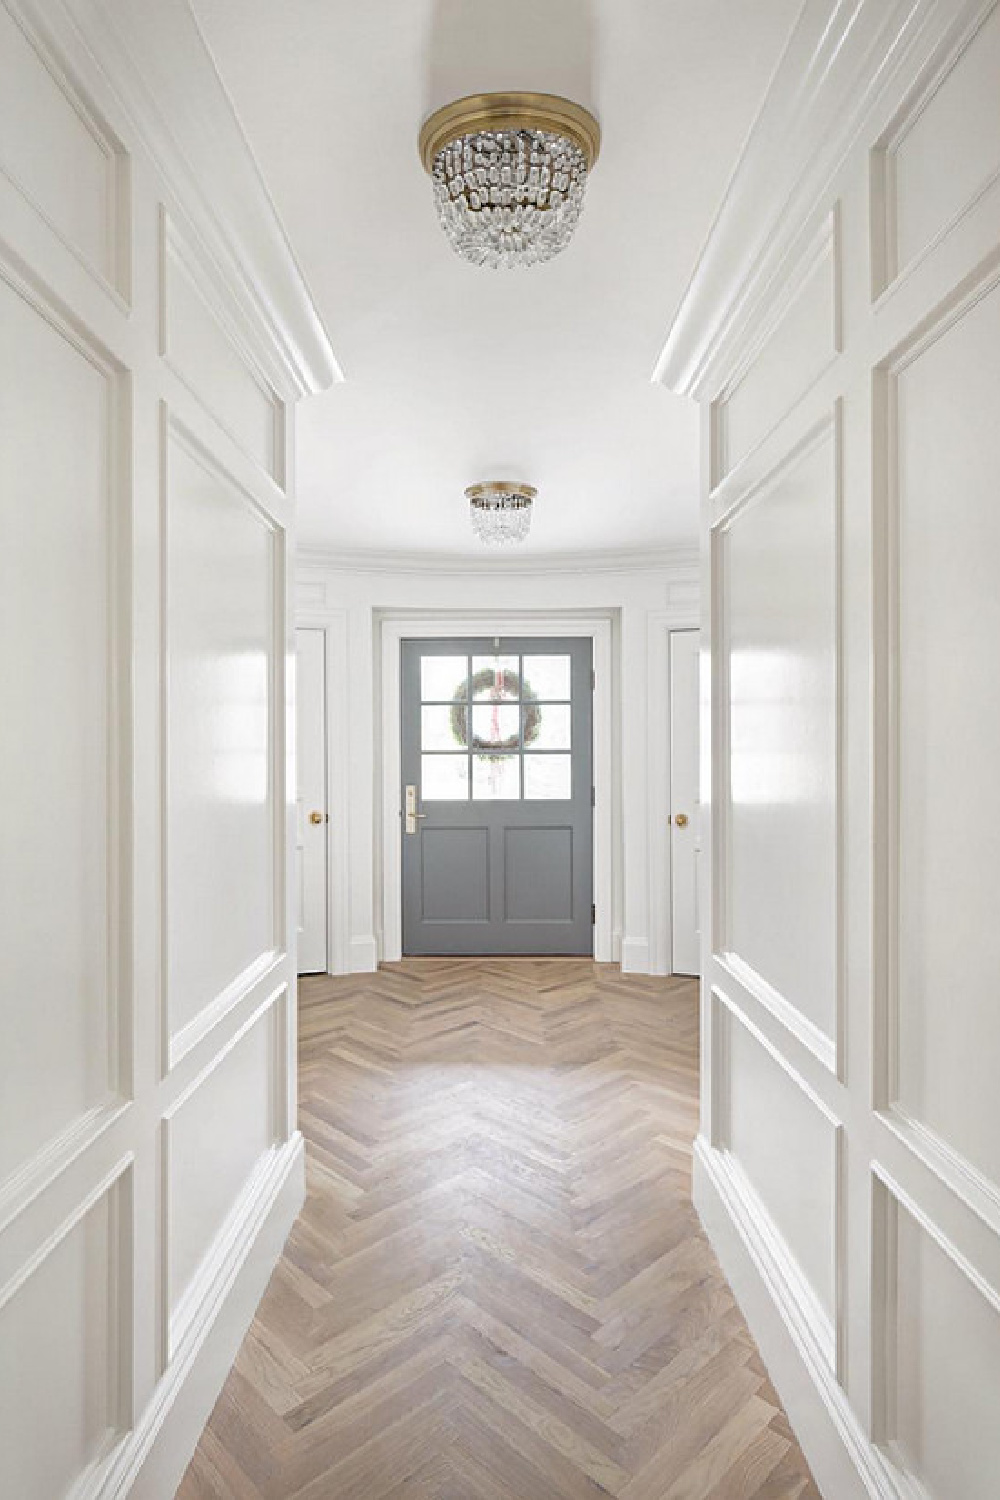 Benjamin Moore Simply White paint color on paneling in a hall. Design by The Fox Group. Herringbone wood floor and beautiful grey painted door. Come BE INSPIRED BY MORE Timeless Interior Design Ideas, Paint Colors & Furniture Finds. #thefoxgroup #benjaminmooresimlywhite #herringbone #woodfloor #interiordesigninspiration